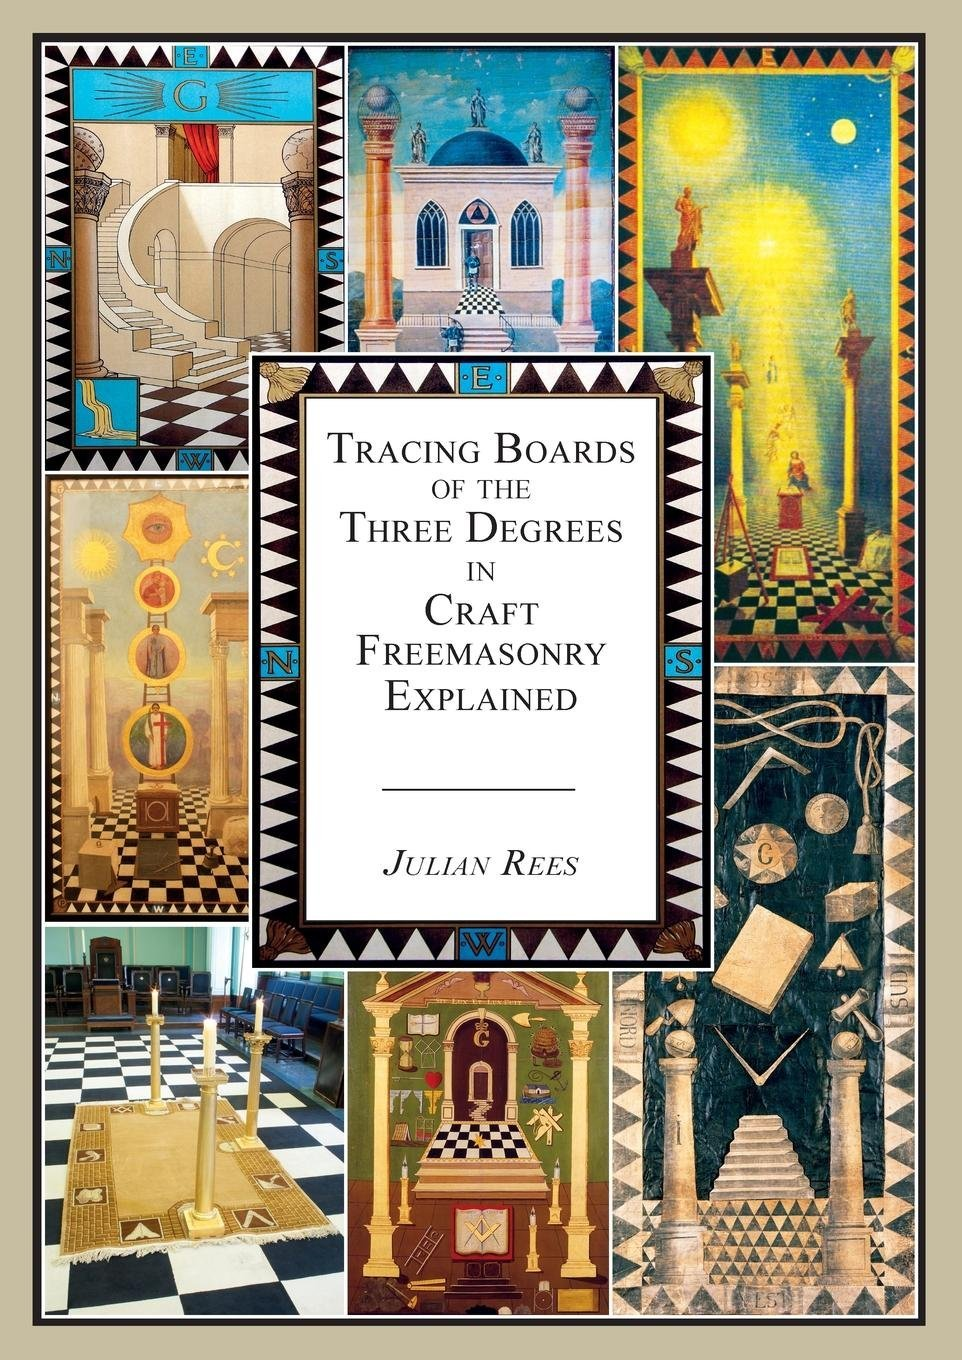 Buy Tracing Boards Of The Three Degrees In Craft Freemasonry